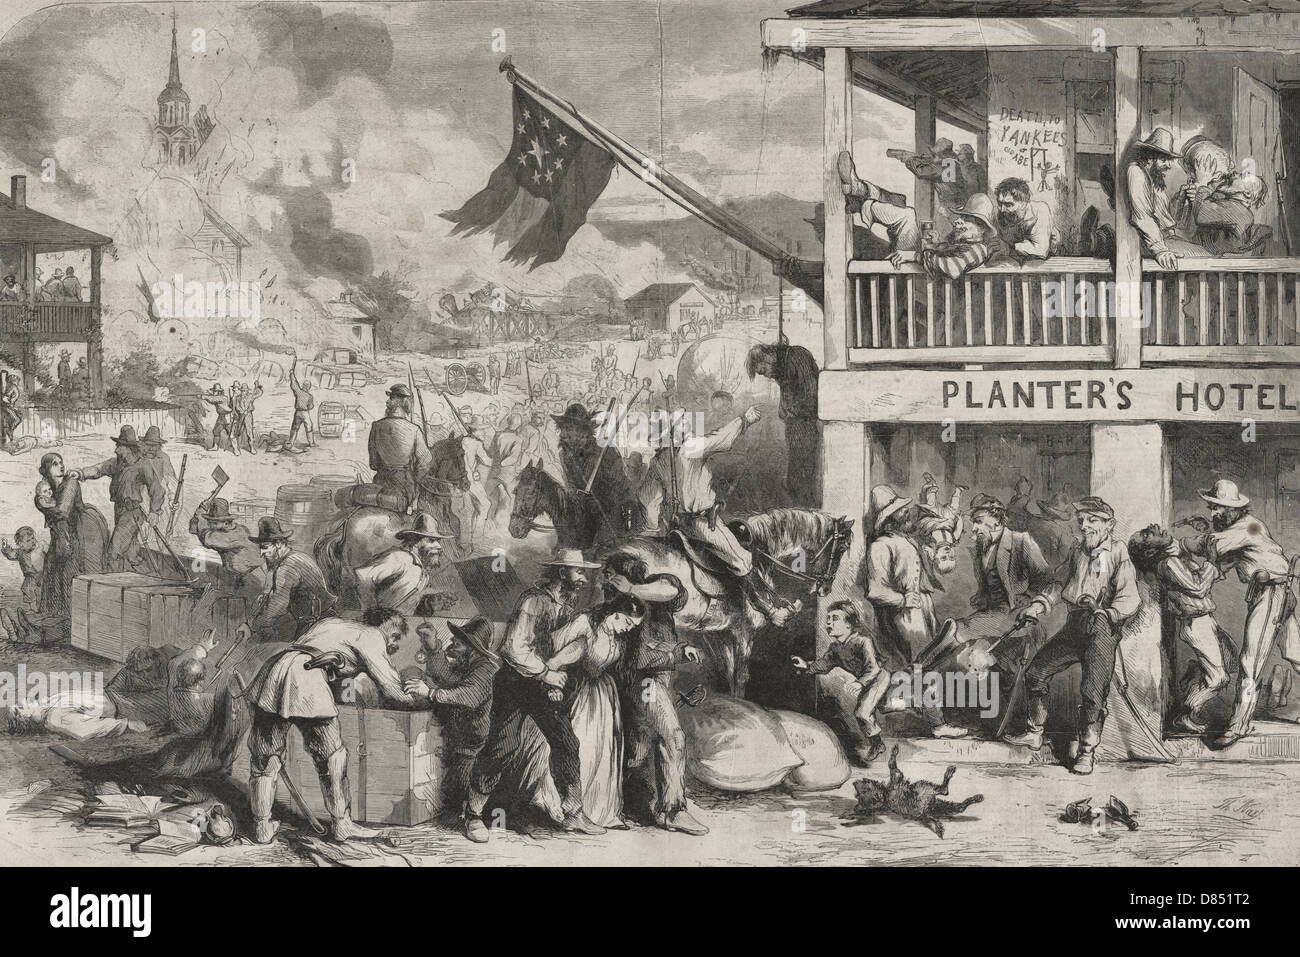 A Rebel guerrilla raid in a western town - a raid on a western town by a group of Confederate guerrillas who are - Stock Image